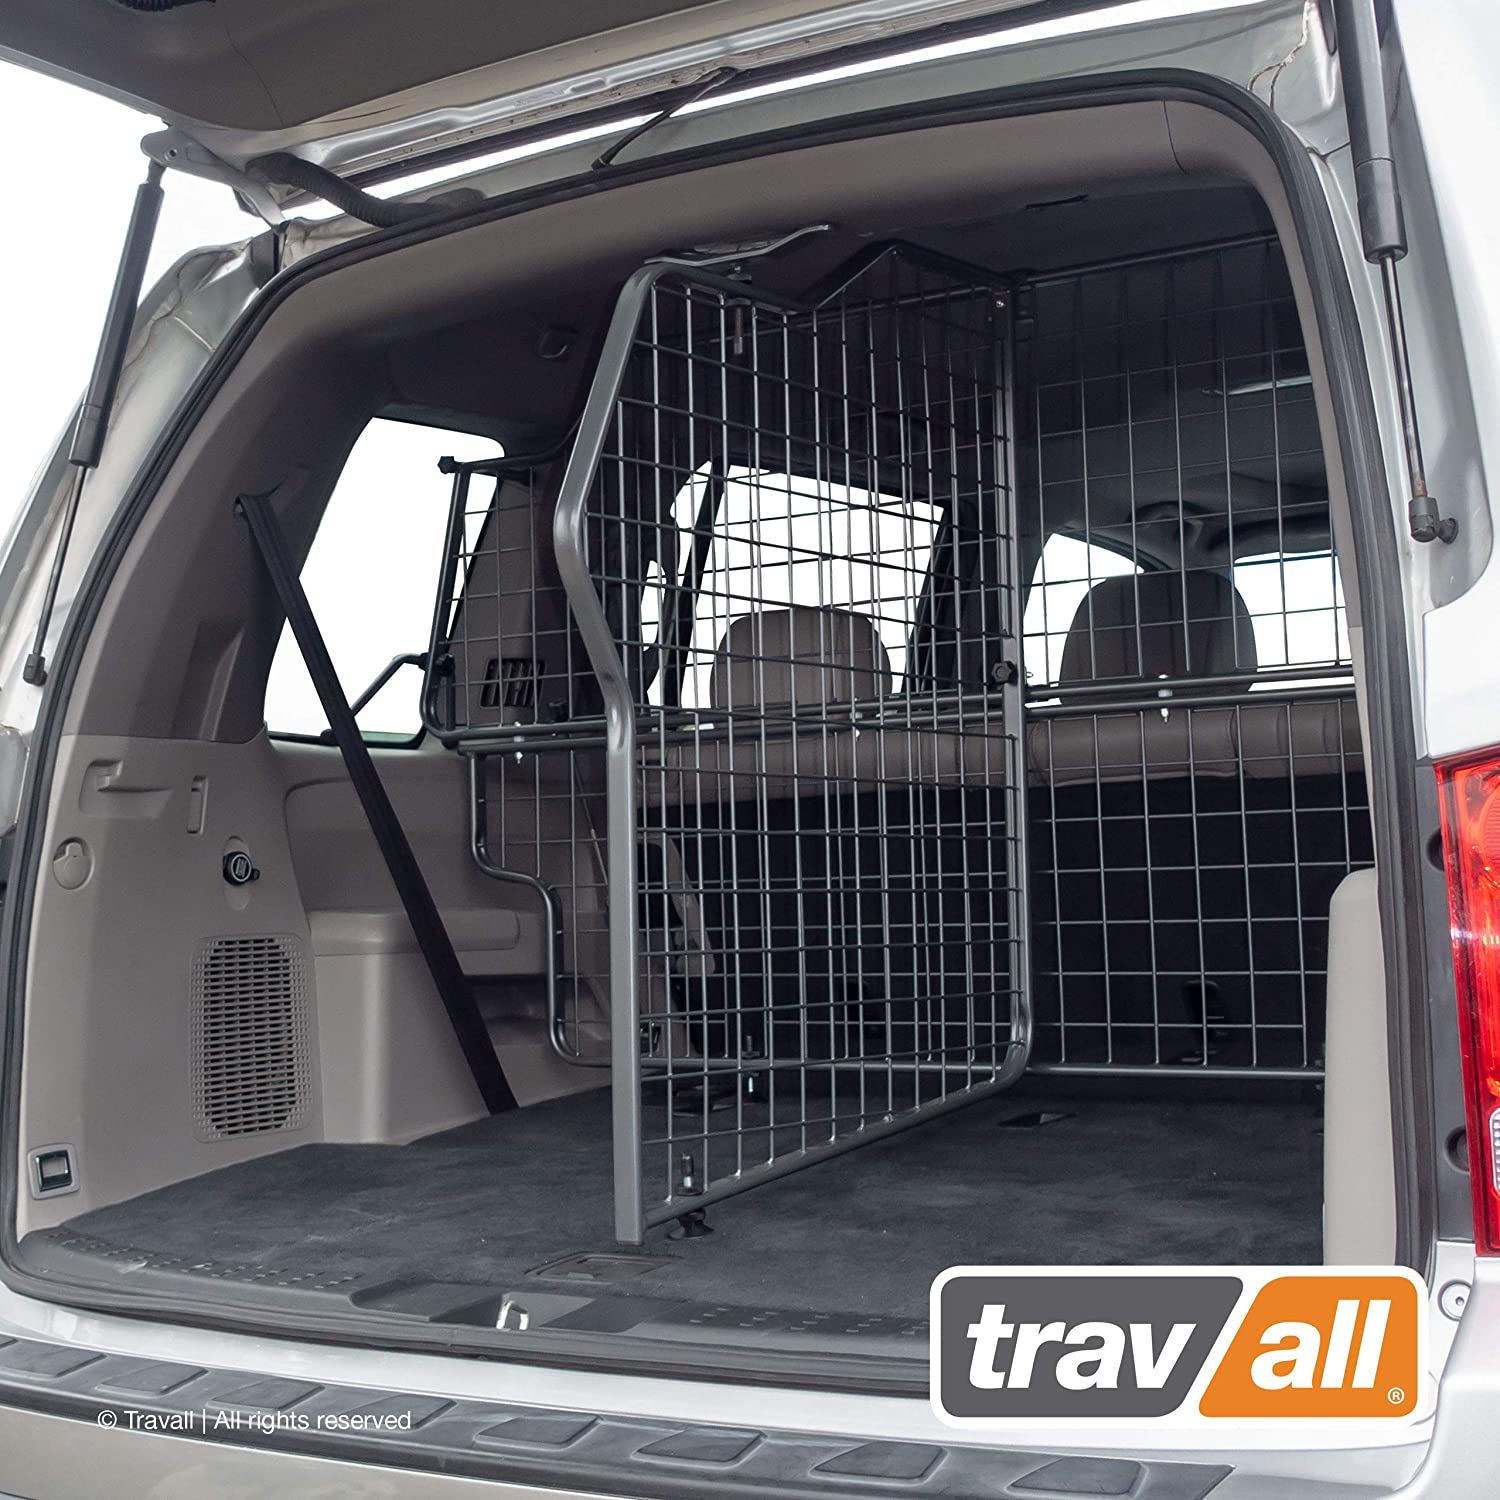 Travall Guard Safety Pack Compatible with Honda Pilot (2008-2015) - Steel Pet and Baggage Barrier TDG1570 and Trunk Divider TDG1570D